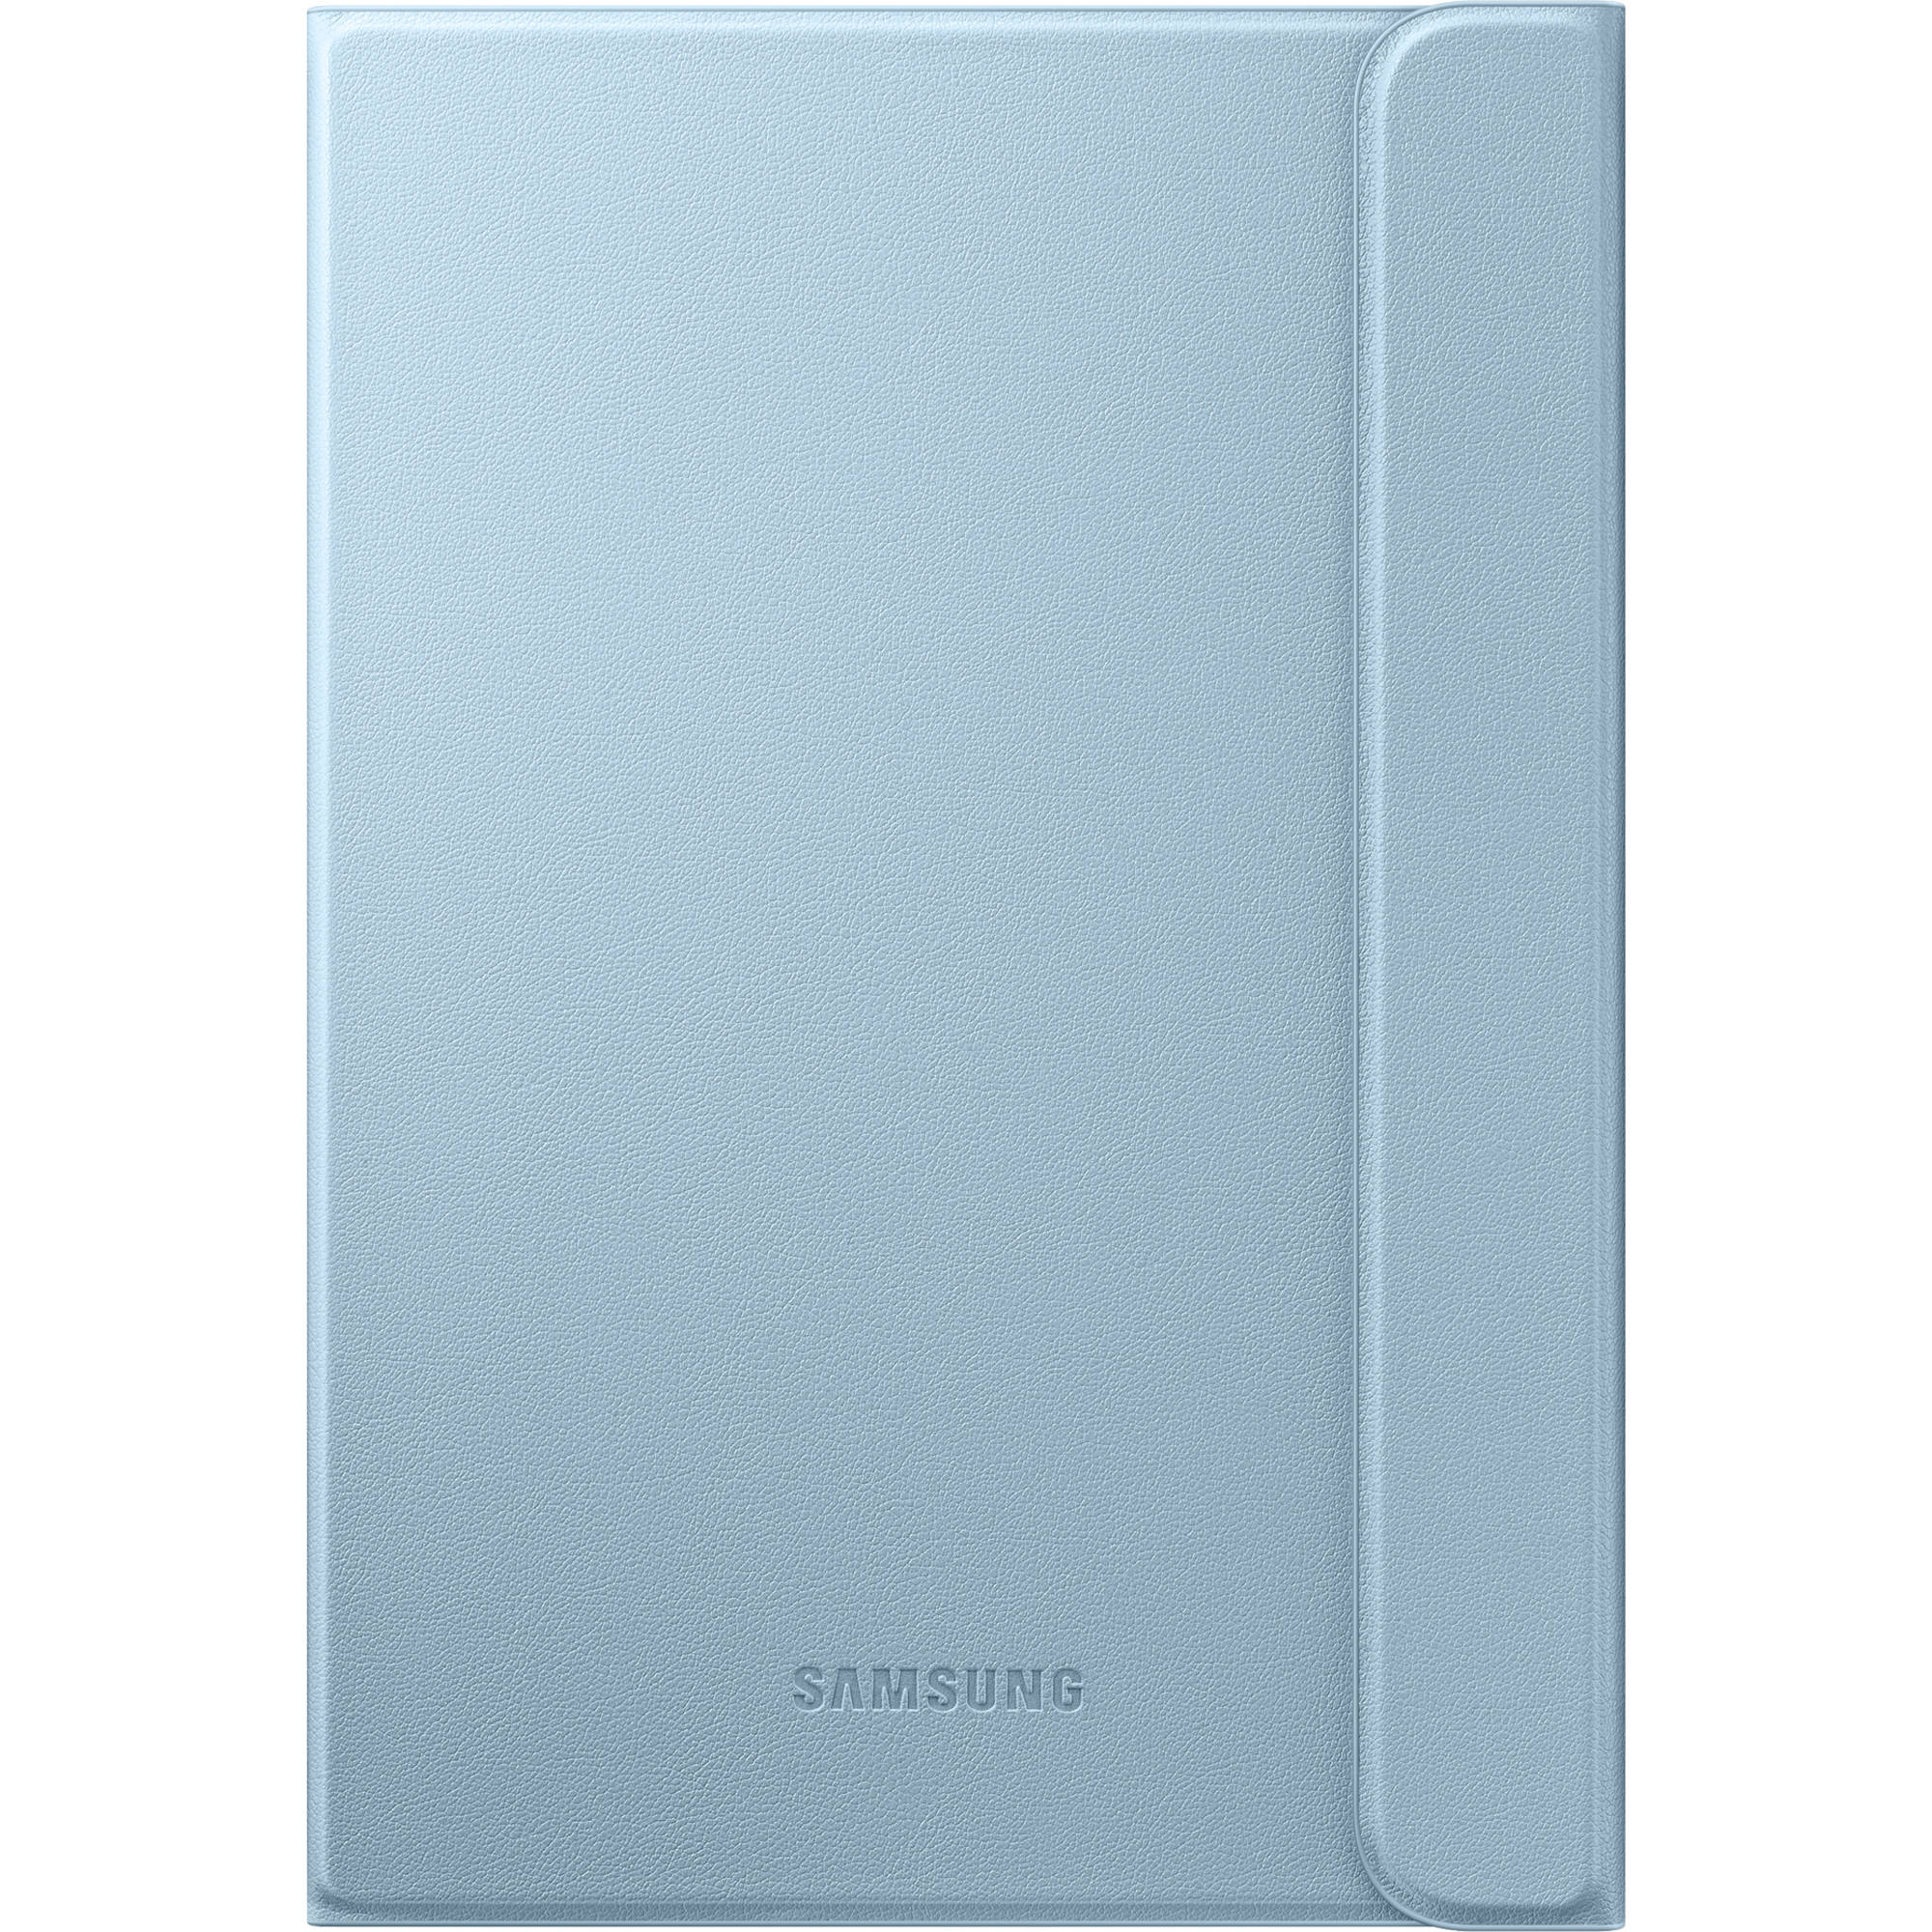 custodia samsung galaxy tab s2 8.0 originale